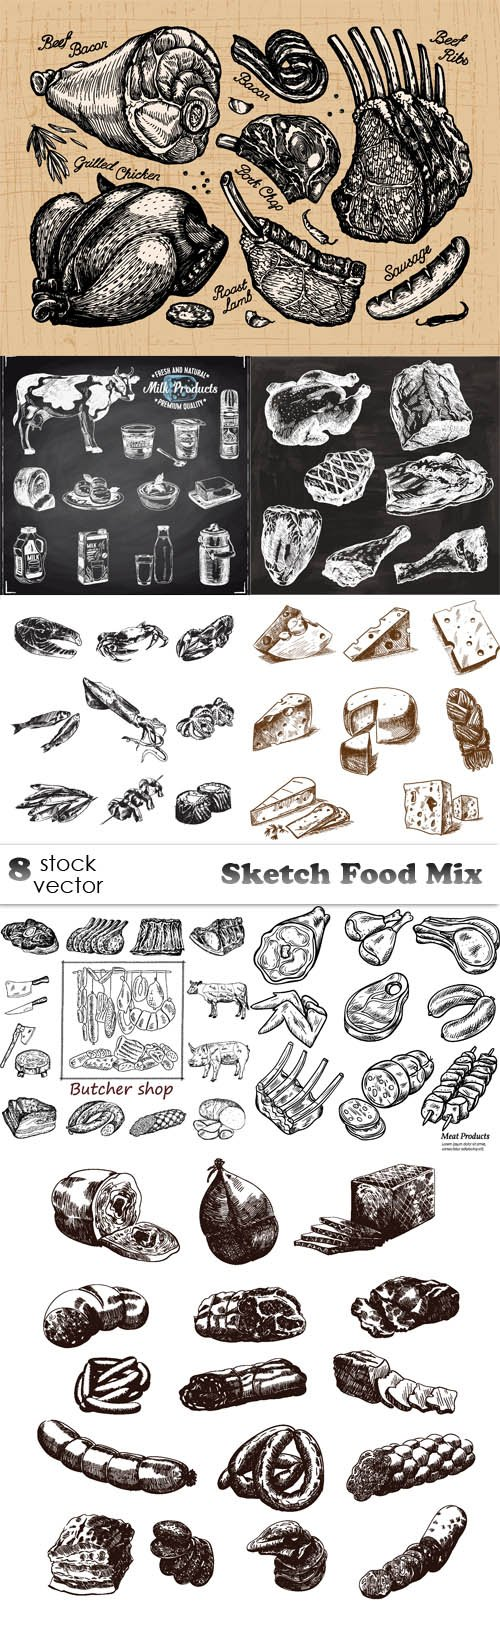 Vectors - Sketch Food Mix